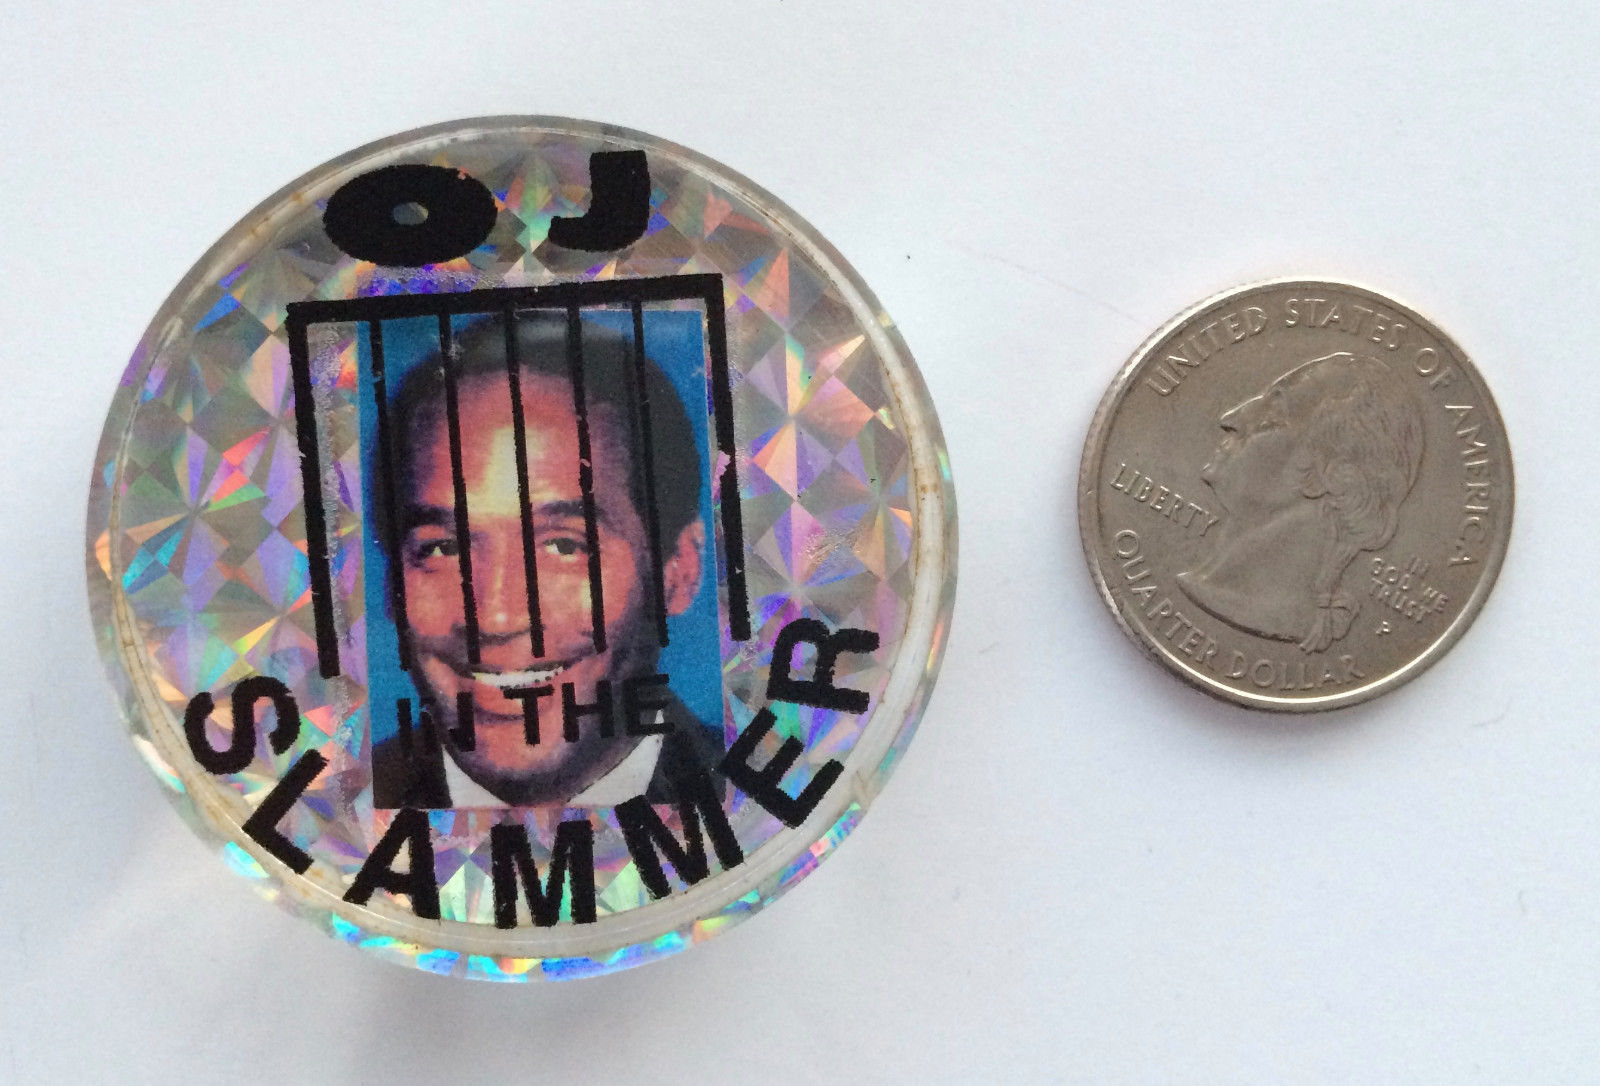 slammer pog  American Crime Story' Fans Can Explore the Case Further With These ...